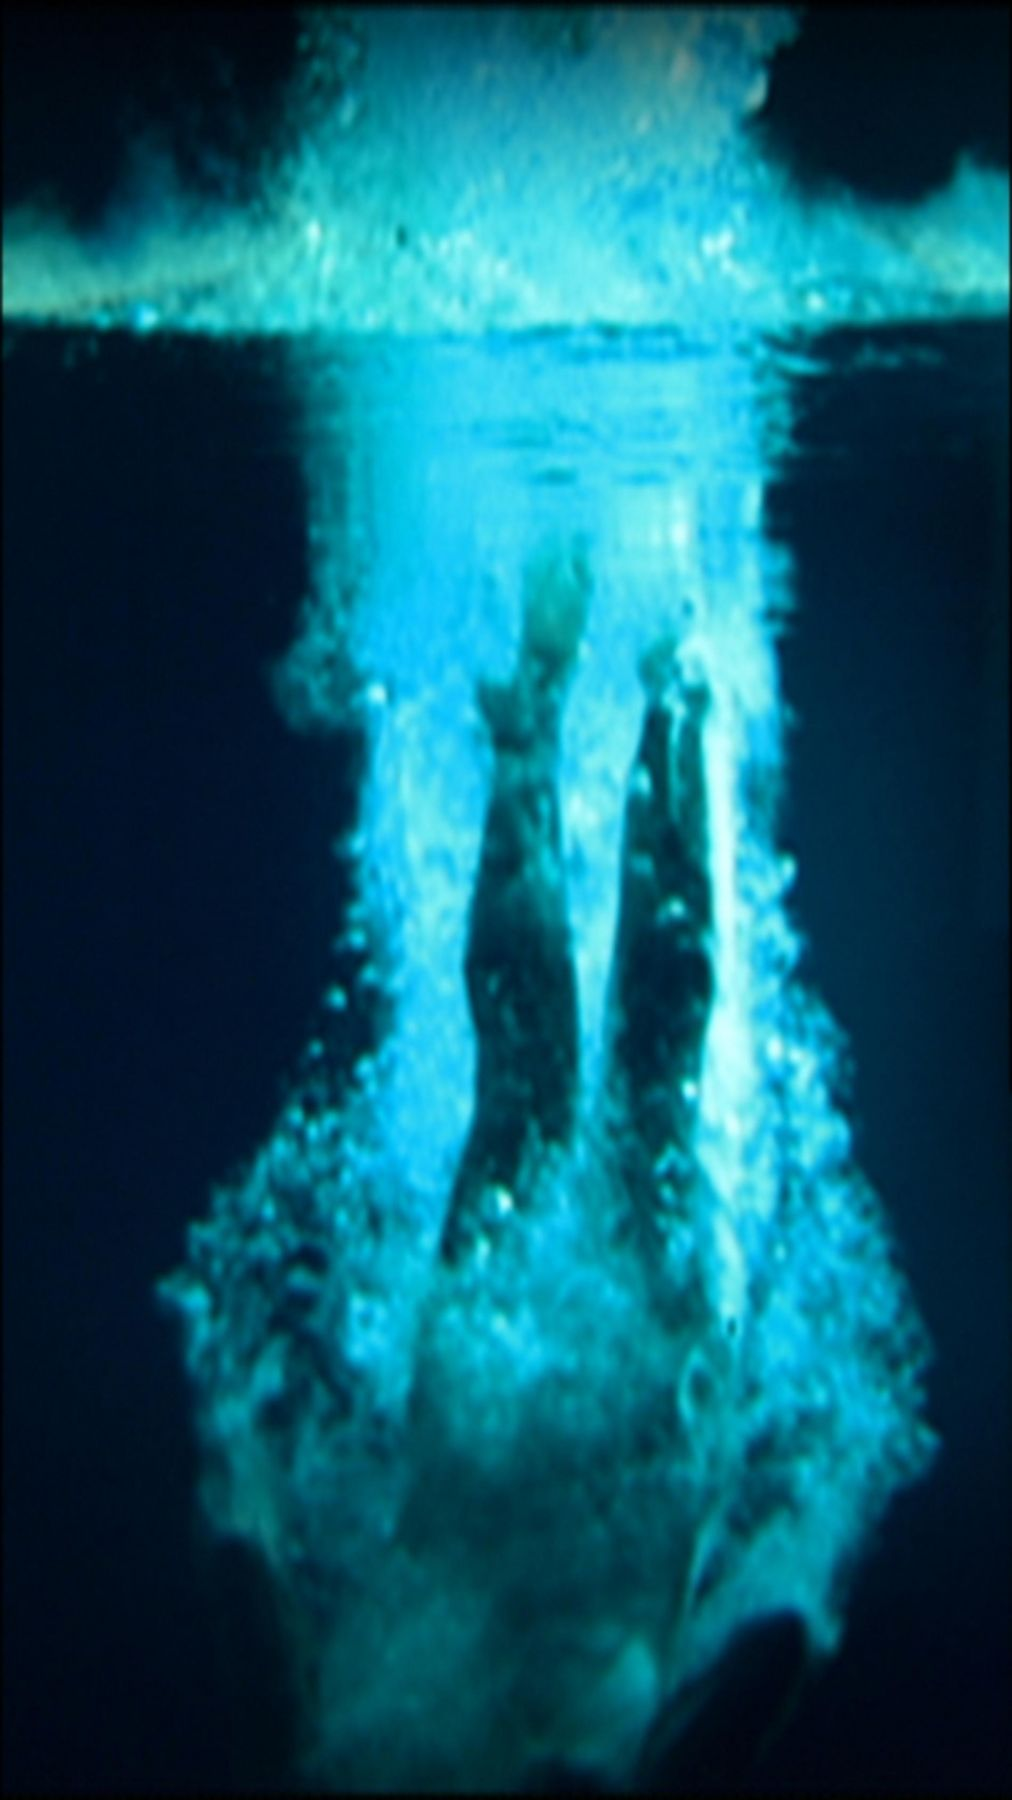 , BILL VIOLA The Last Angel, 2002 Color video on plasma display mounted vertically on wall 47 ½ x 28 ½ x 4 in. (120.7 cm x 72.4 cm x 10.2 cm)